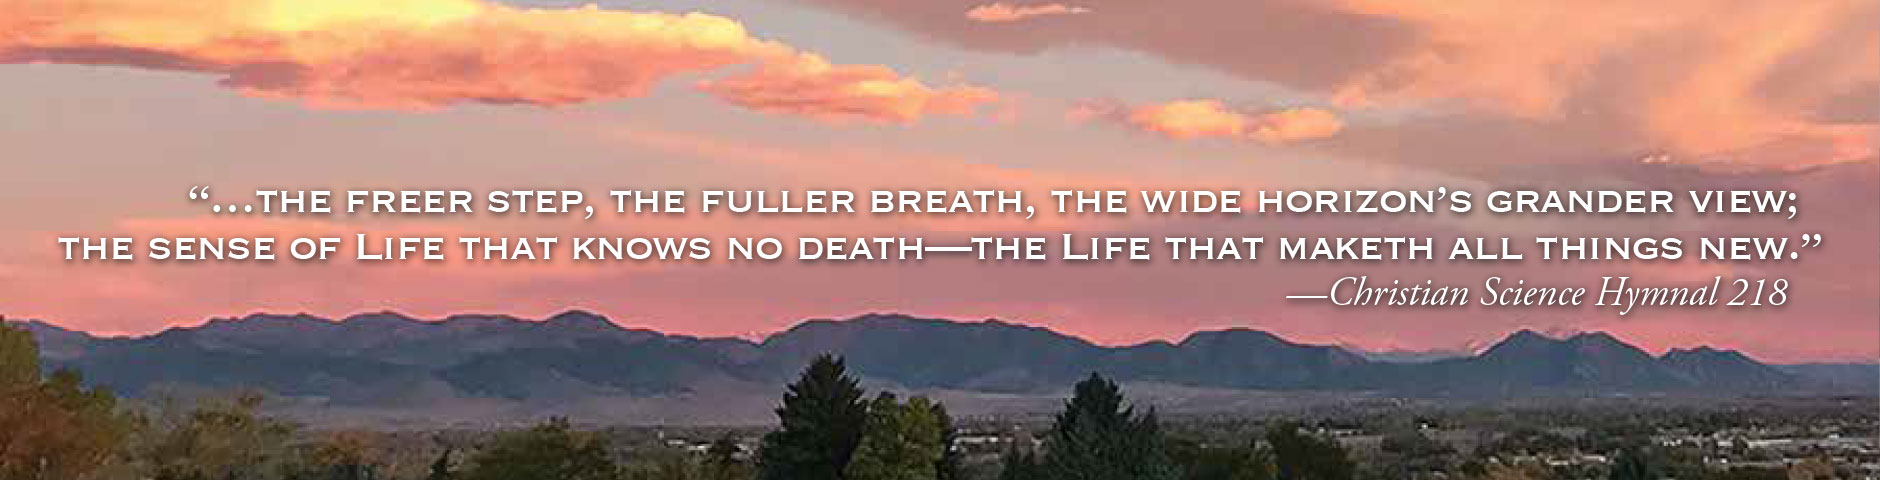 """...the freer step, the fuller breath, the wide horizon's grander view; the sense of Life that knows no death—the Life that maketh all things new.""